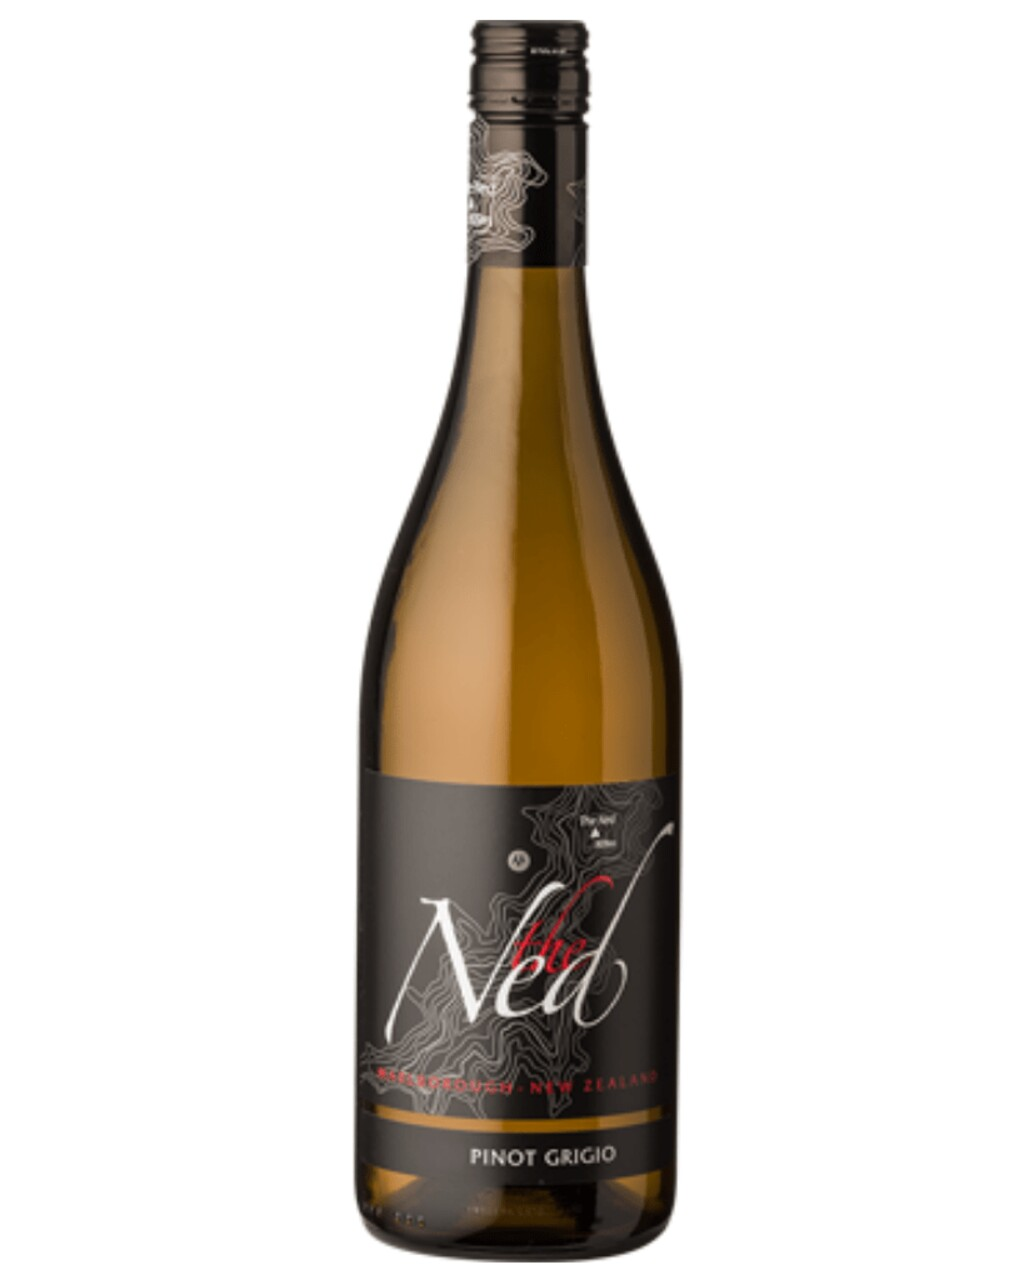 Marisco Vineyard The Ned Pinot Grigio